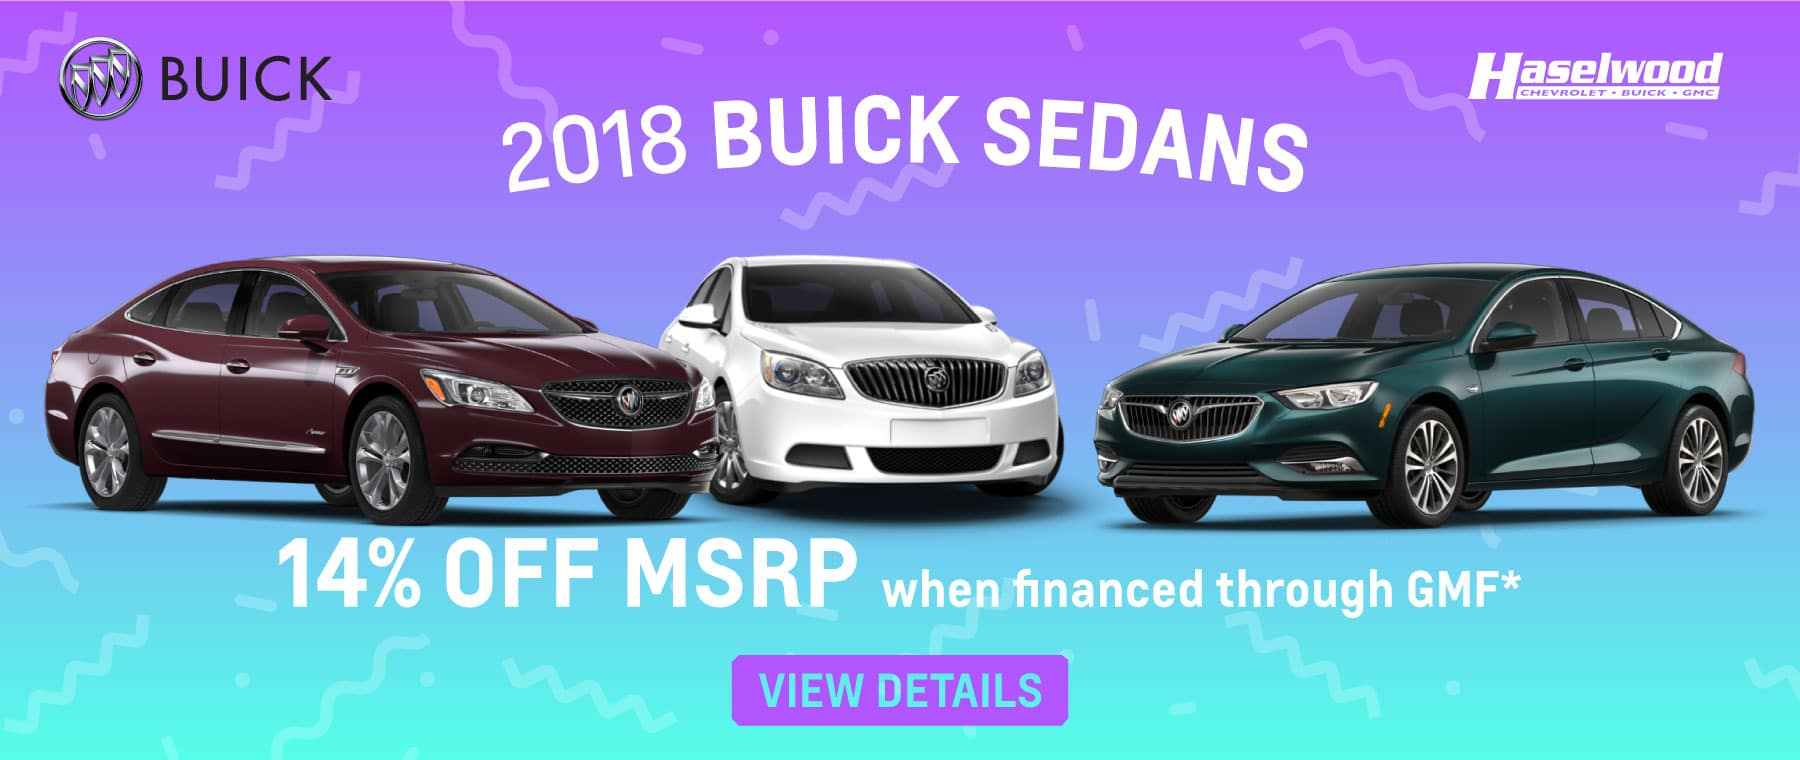 2018 Buick Sedans  14% OFF MSRP when financed through GMF.